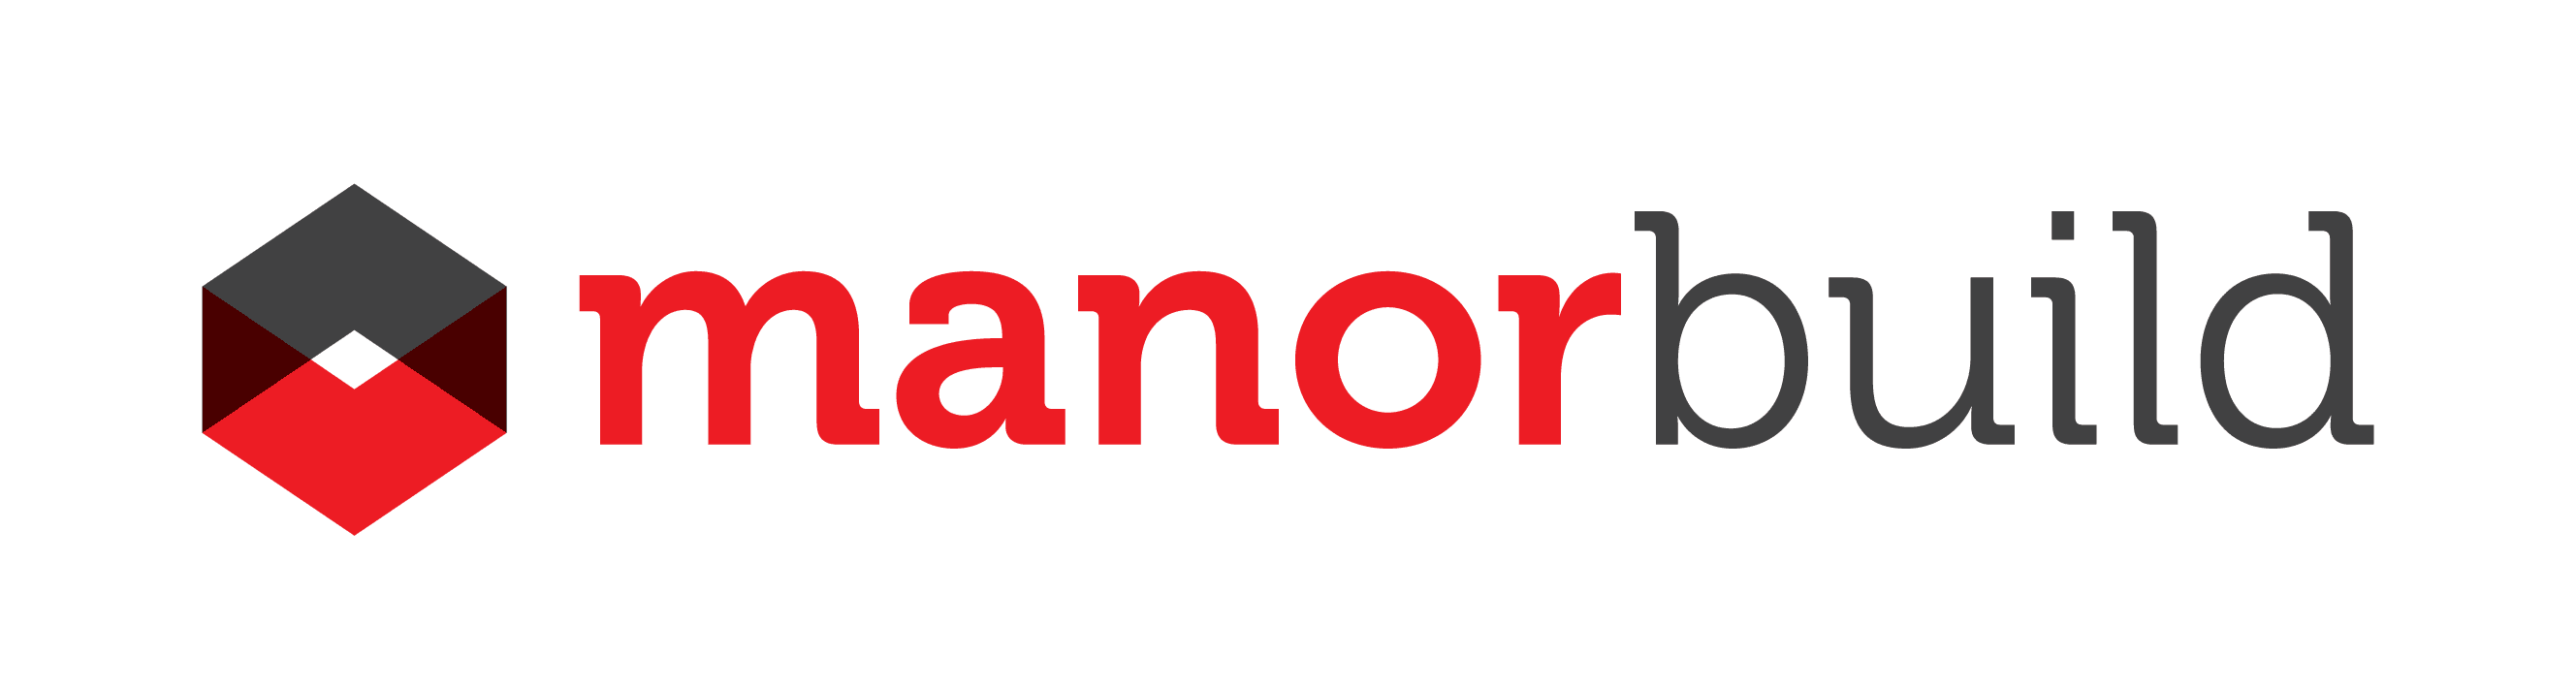 Manor Build Logo_transparent.jpg